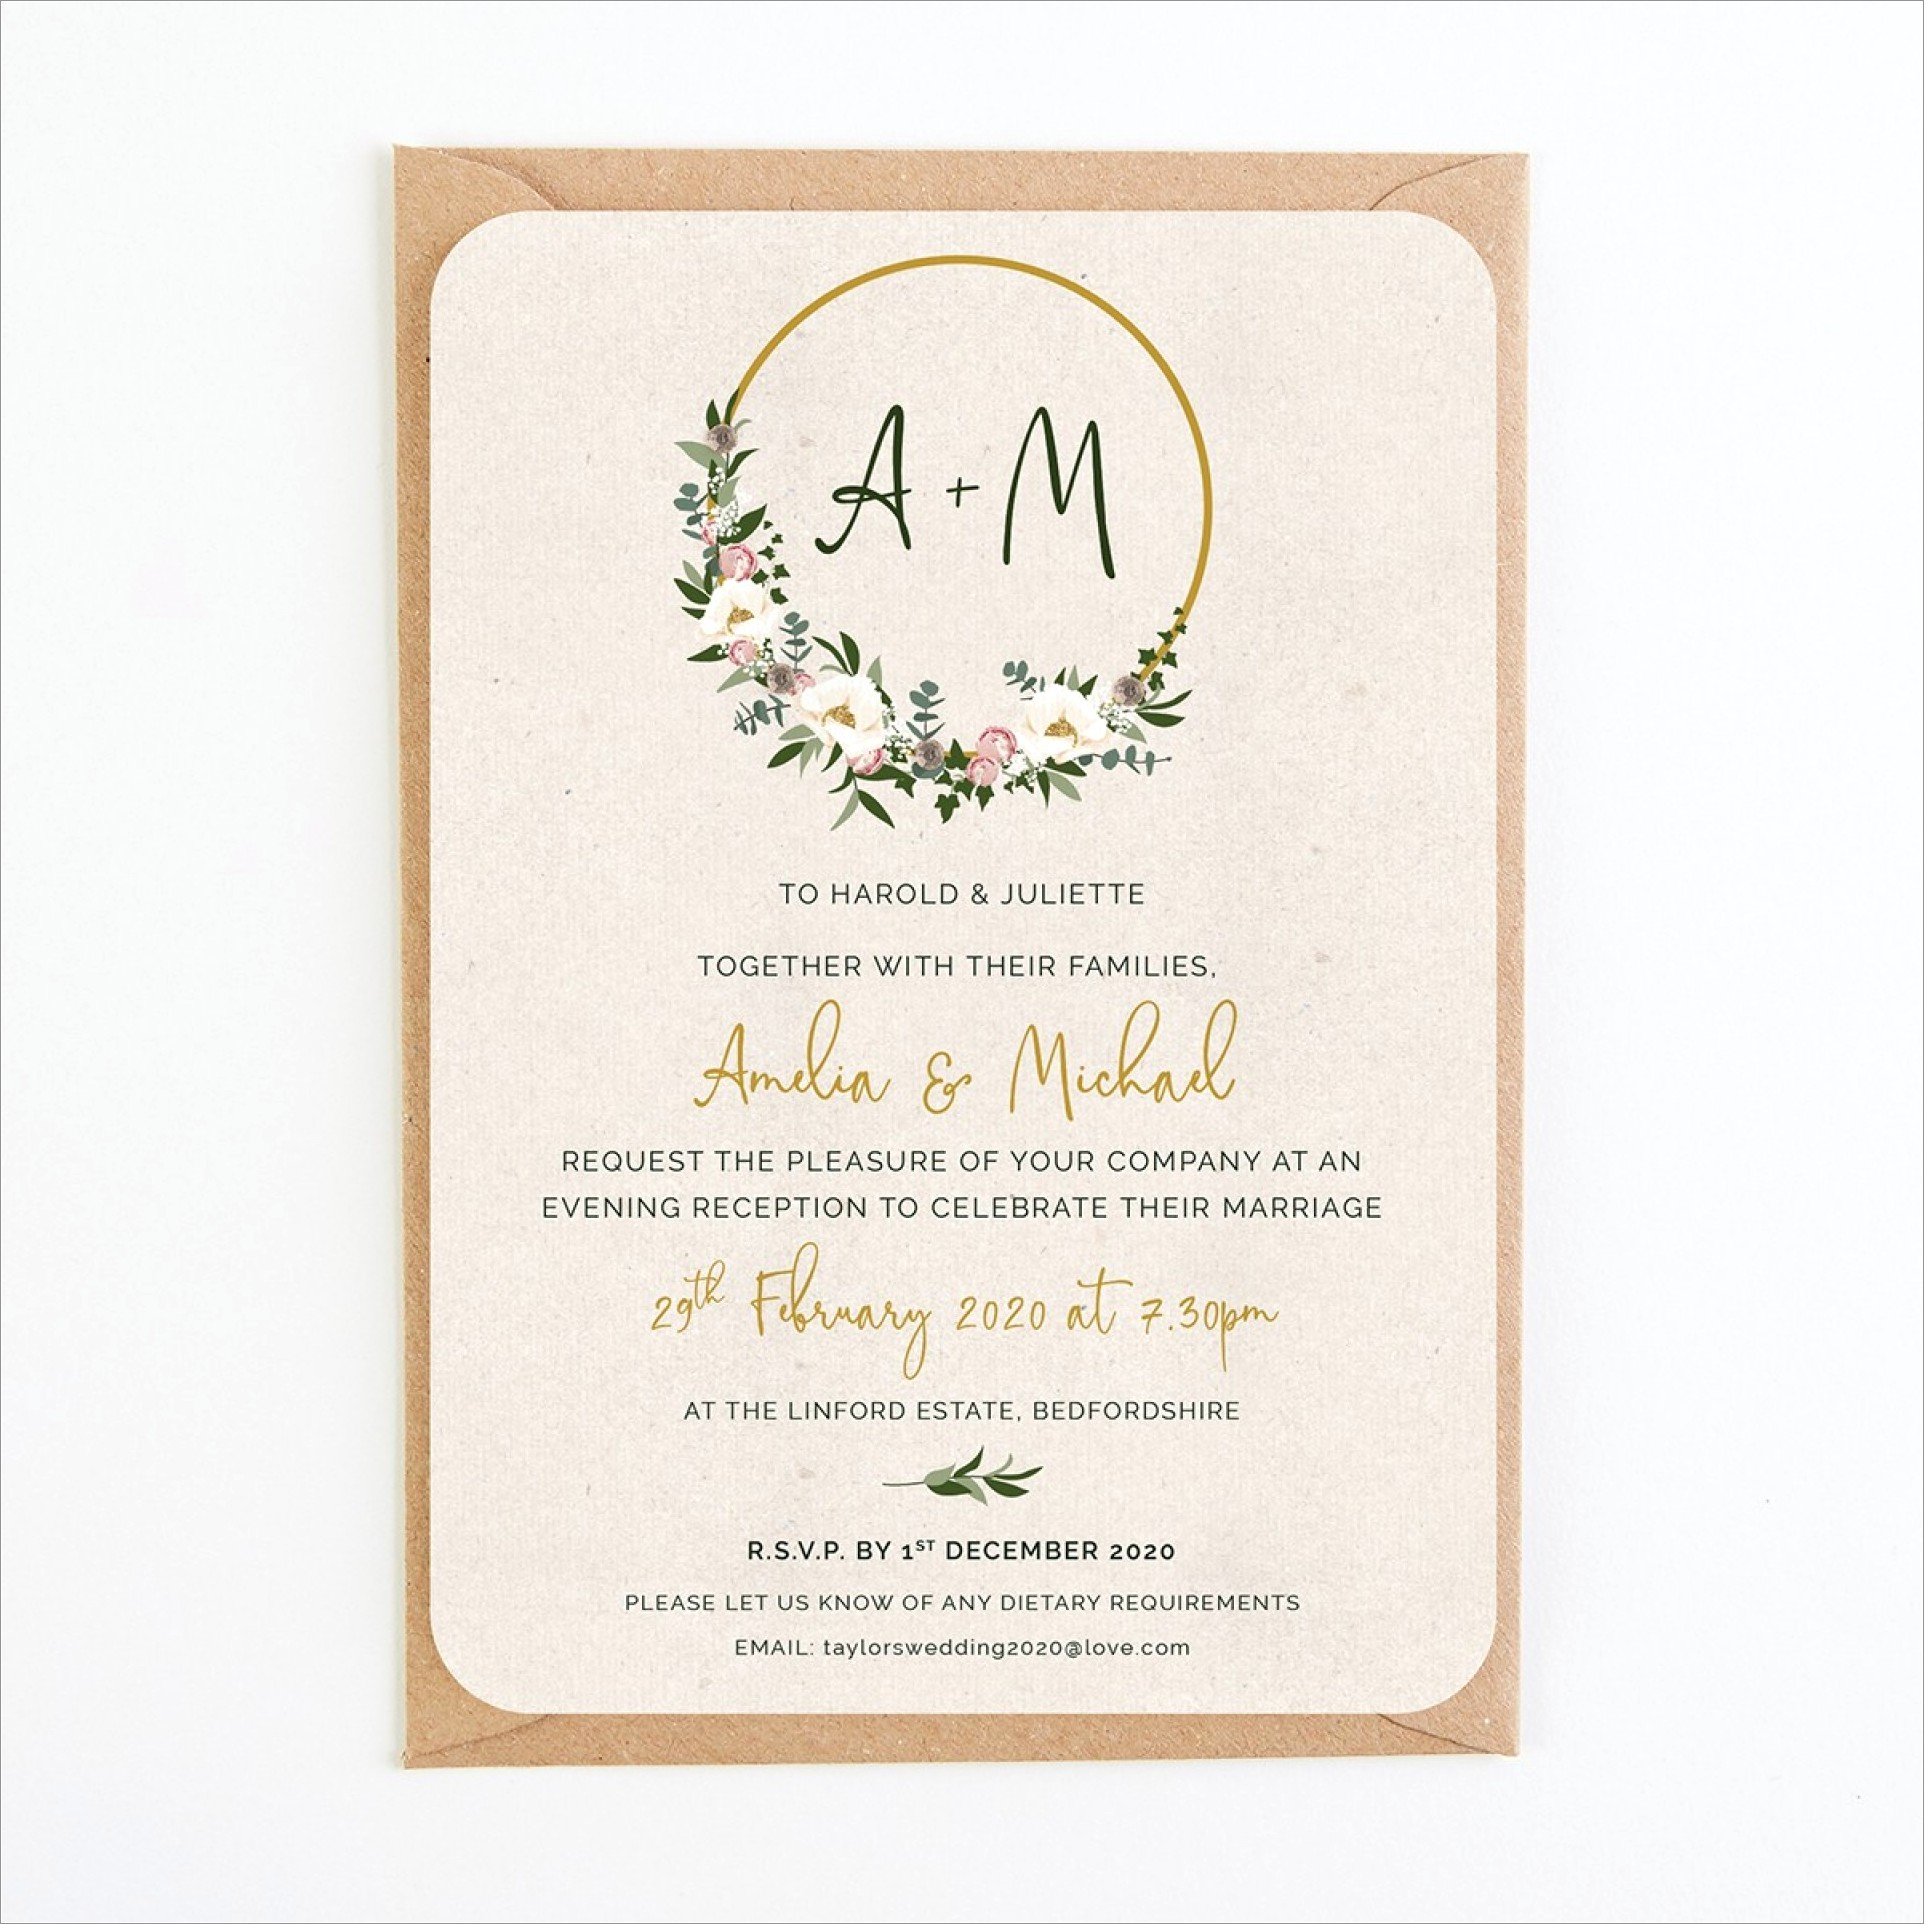 Floral Images For Wedding Invitations